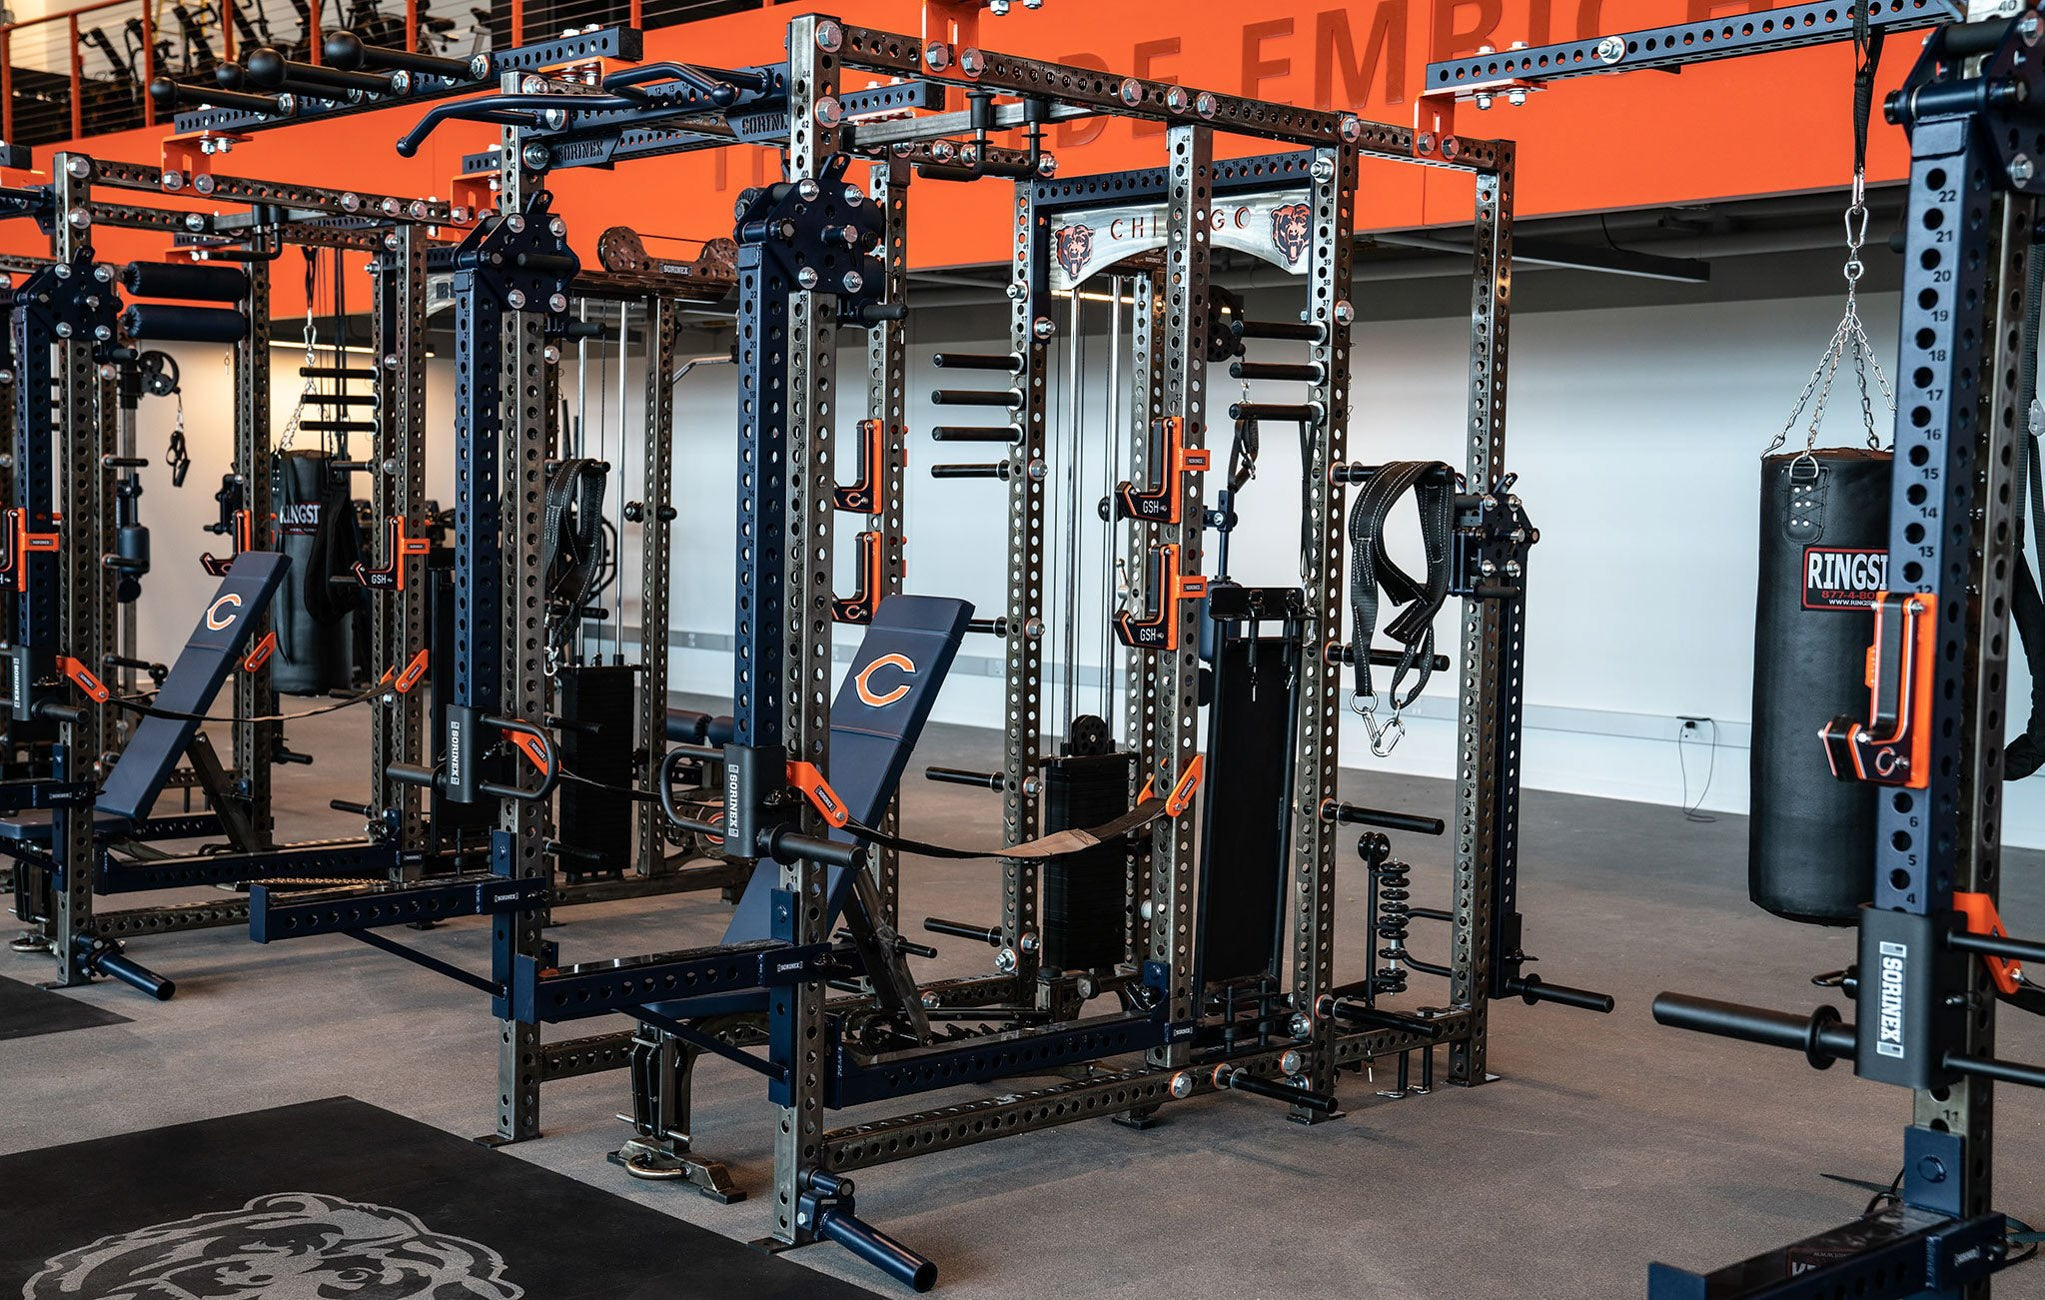 Chicago Bears Base Camp Rack & a Half